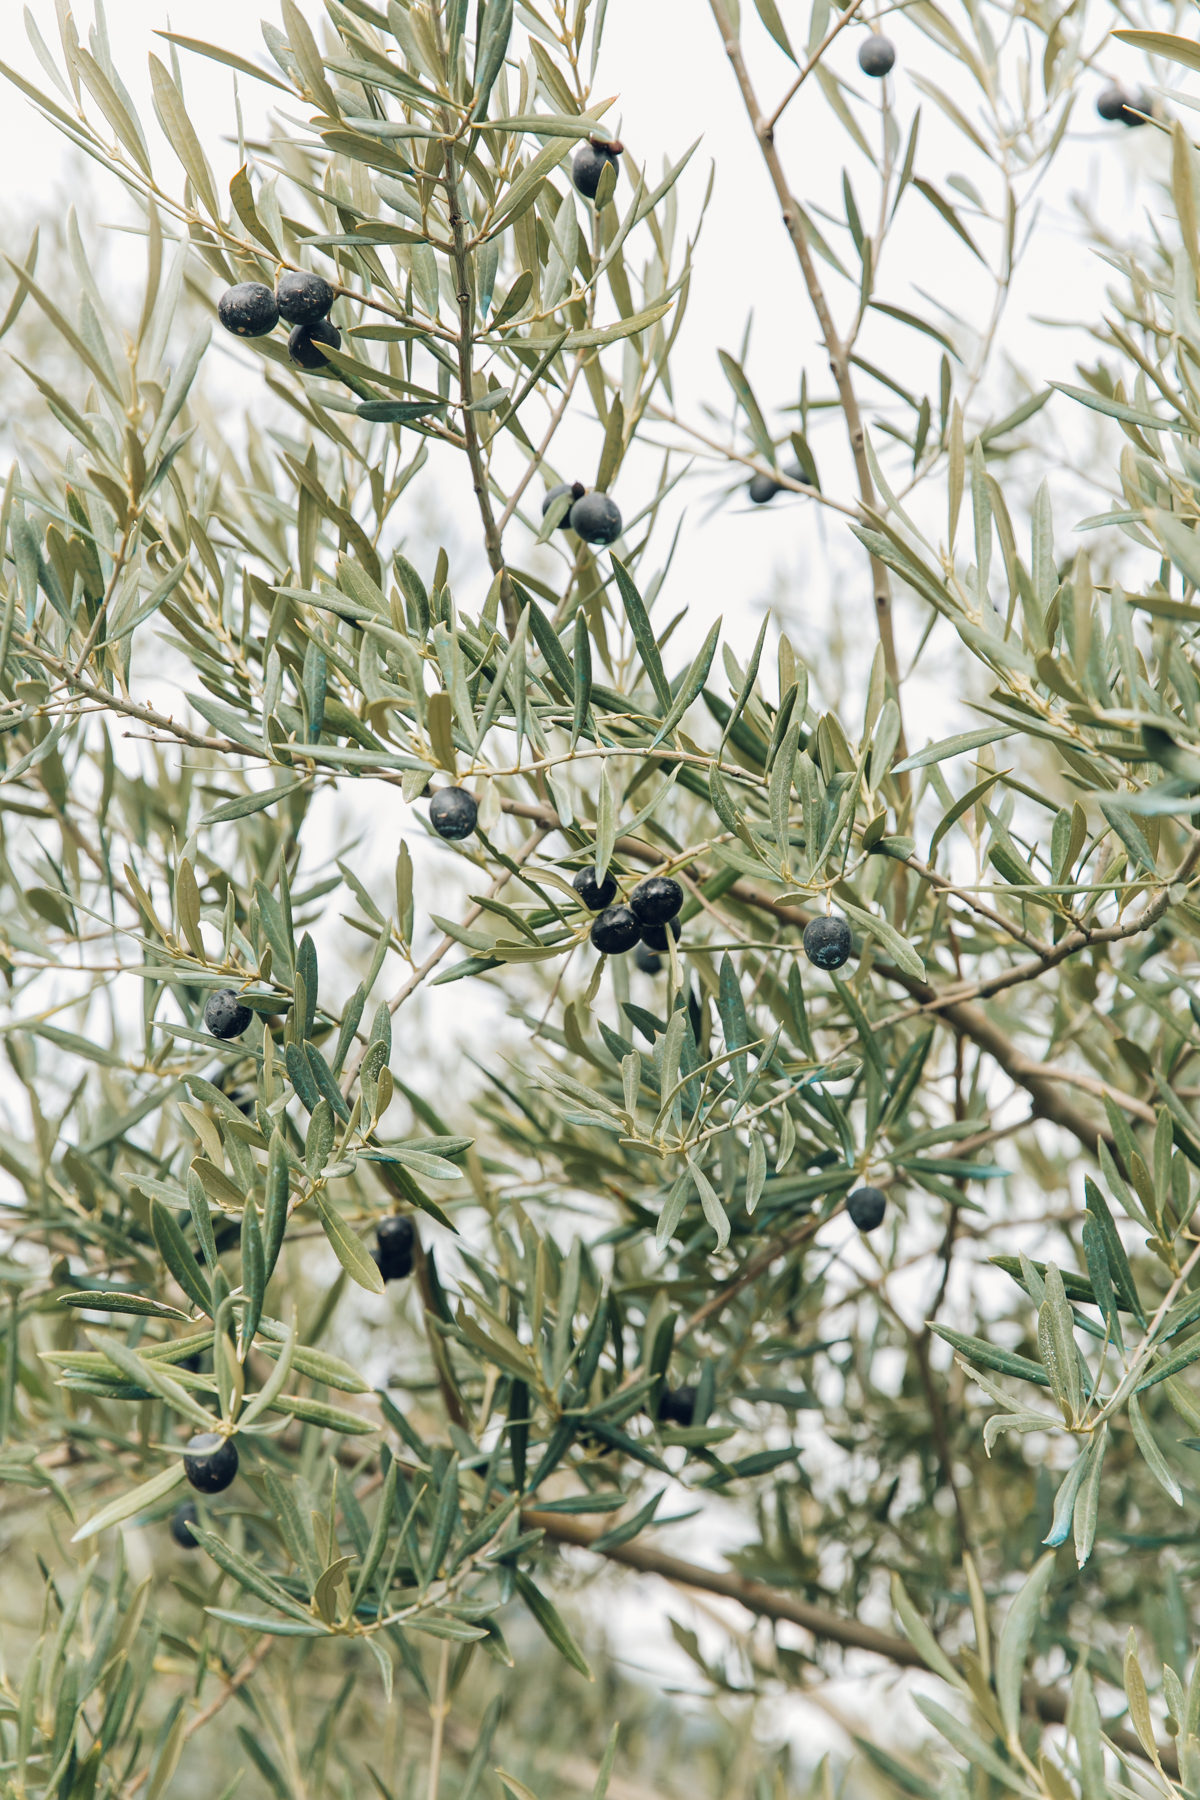 Black olives on the trees in Andalusia.